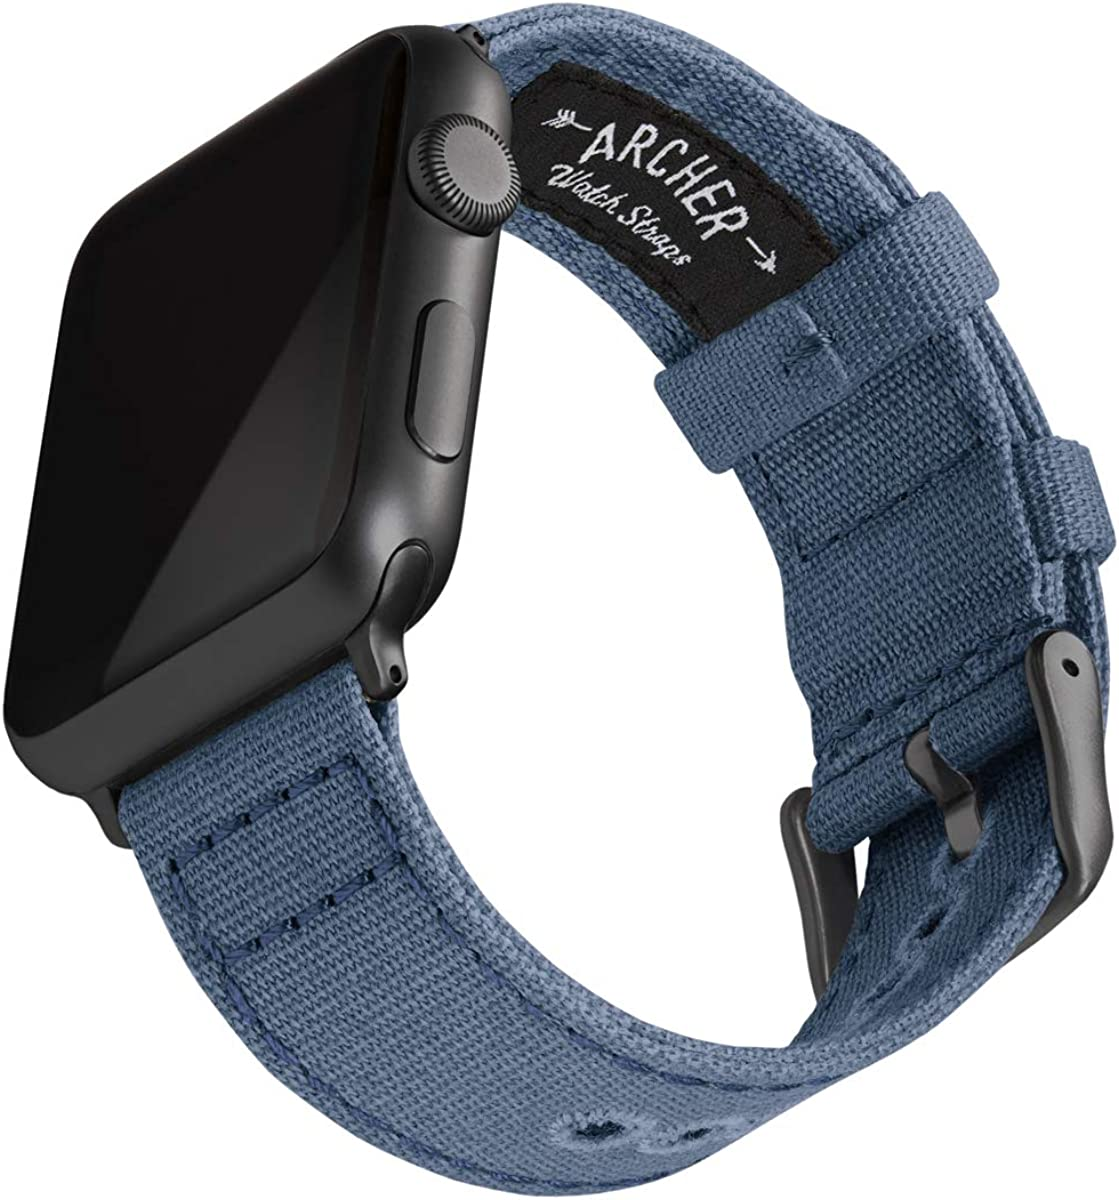 Archer Watch Straps | Correas Reloj Lona para Apple Watch | para Hombre y Mujer, 38/40mm, 42/44mm